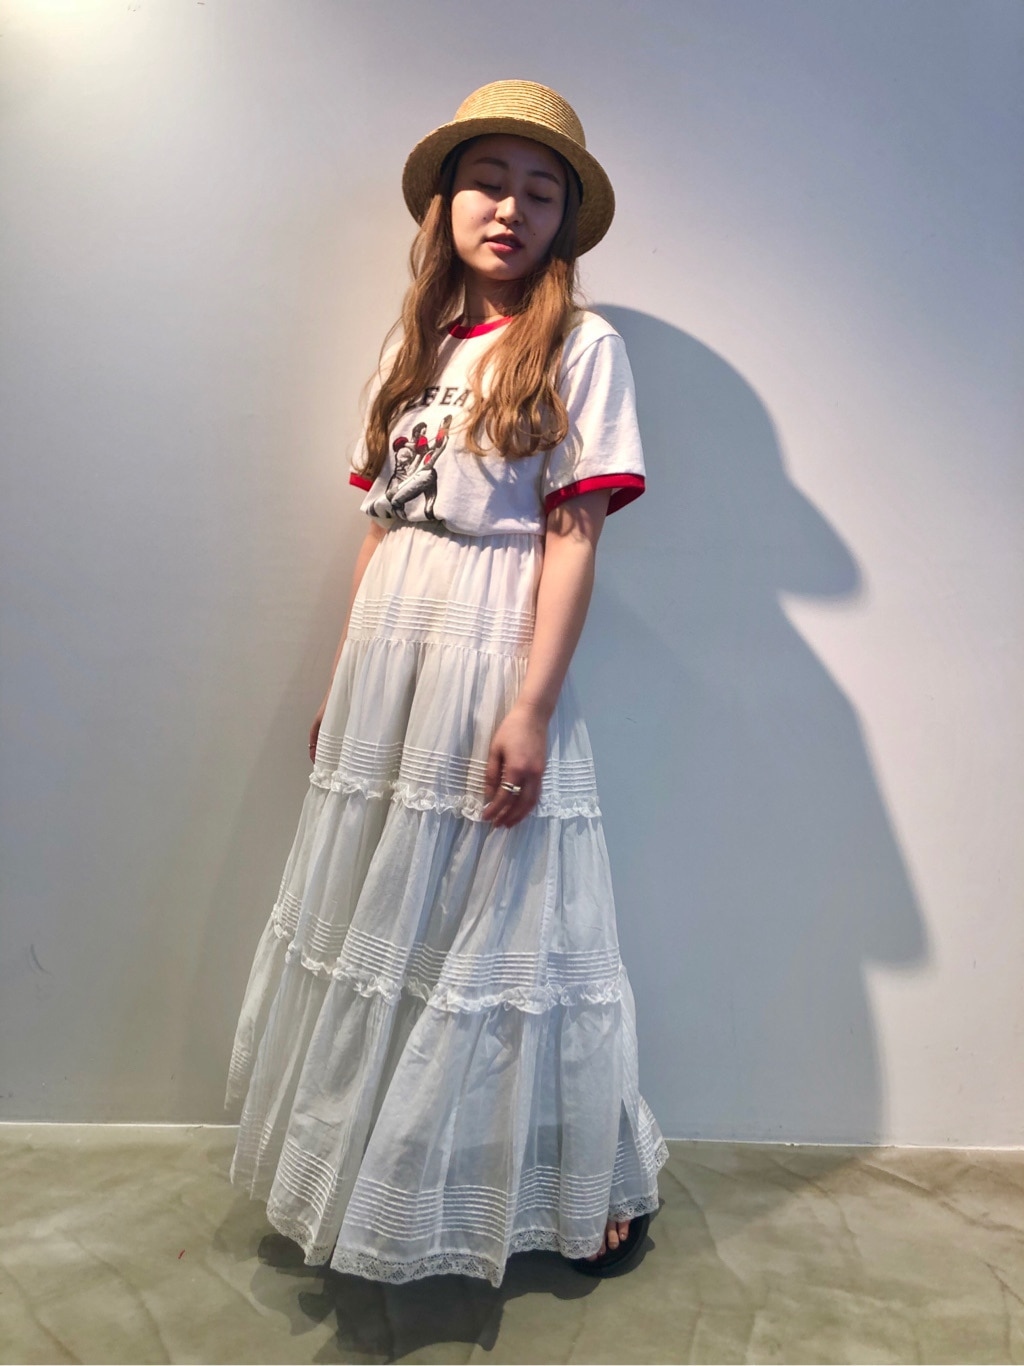 Dot and Stripes CHILD WOMAN ラフォーレ原宿 身長:153cm 2020.06.18